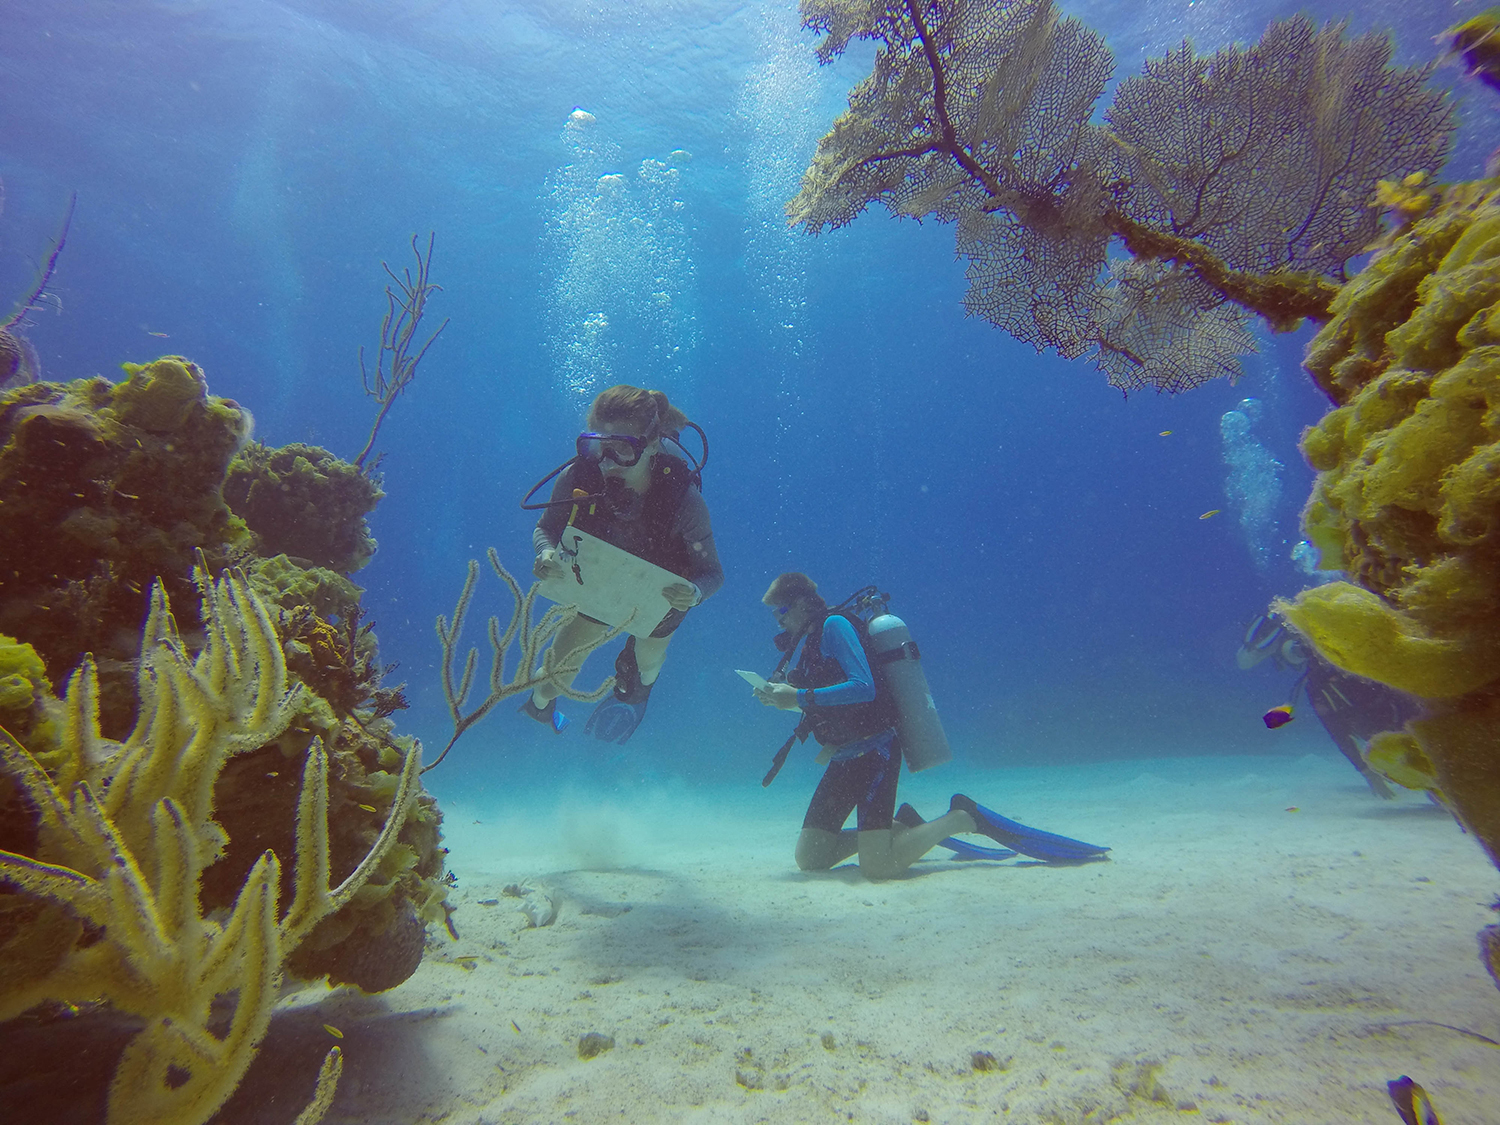 Island School students study small reef patches and take notes and write down observations during a marine ecology lesson.